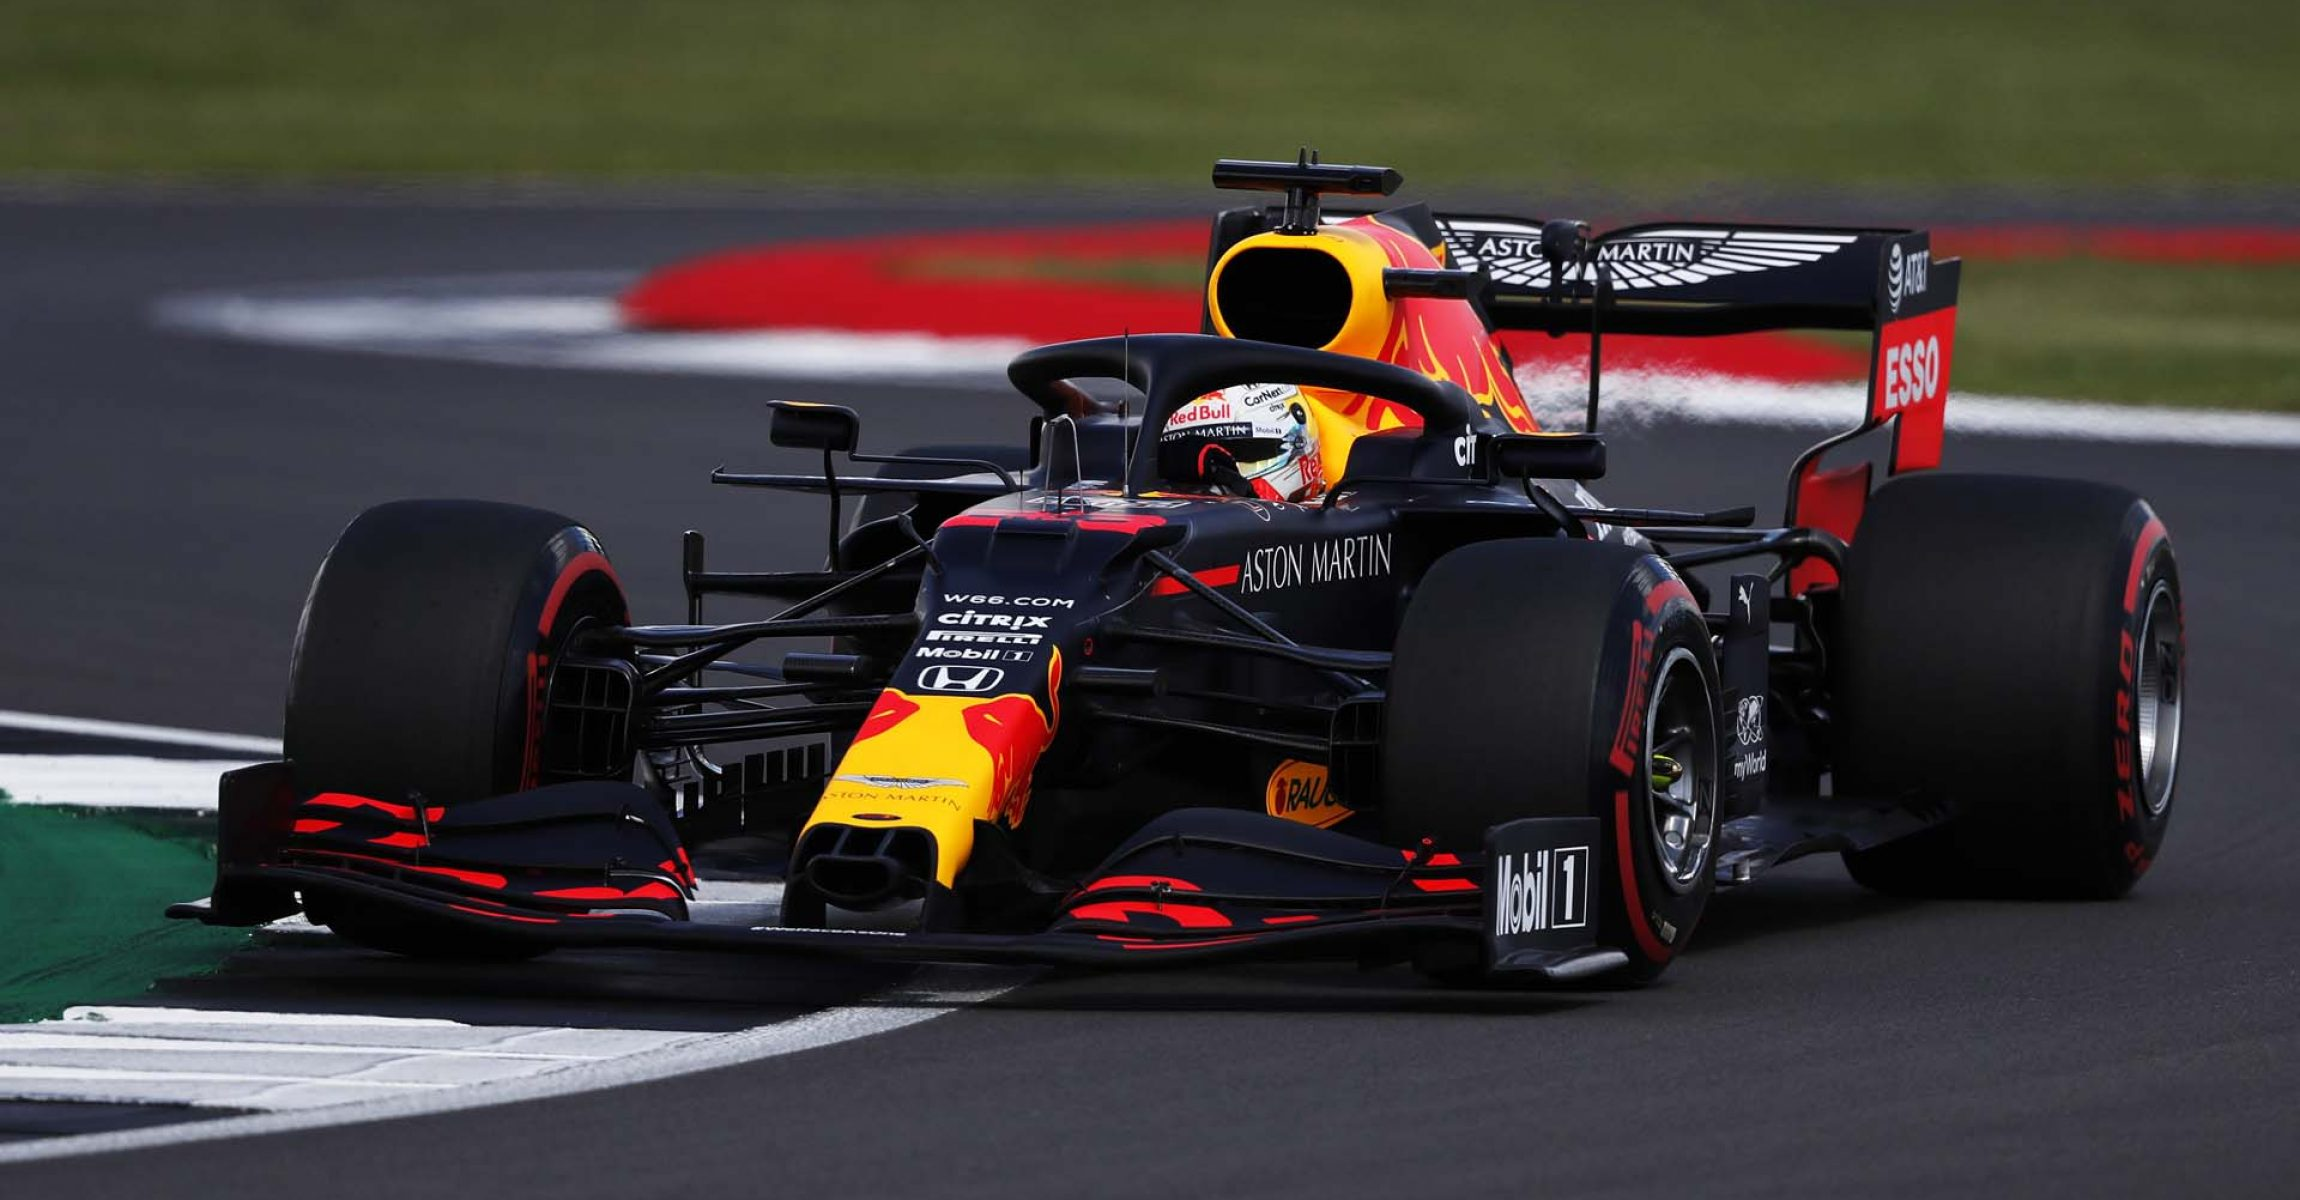 NORTHAMPTON, ENGLAND - AUGUST 01: Max Verstappen of the Netherlands driving the (33) Aston Martin Red Bull Racing RB16 on track during qualifying for the F1 Grand Prix of Great Britain at Silverstone on August 01, 2020 in Northampton, England. (Photo by Frank Augstein/Pool via Getty Images)